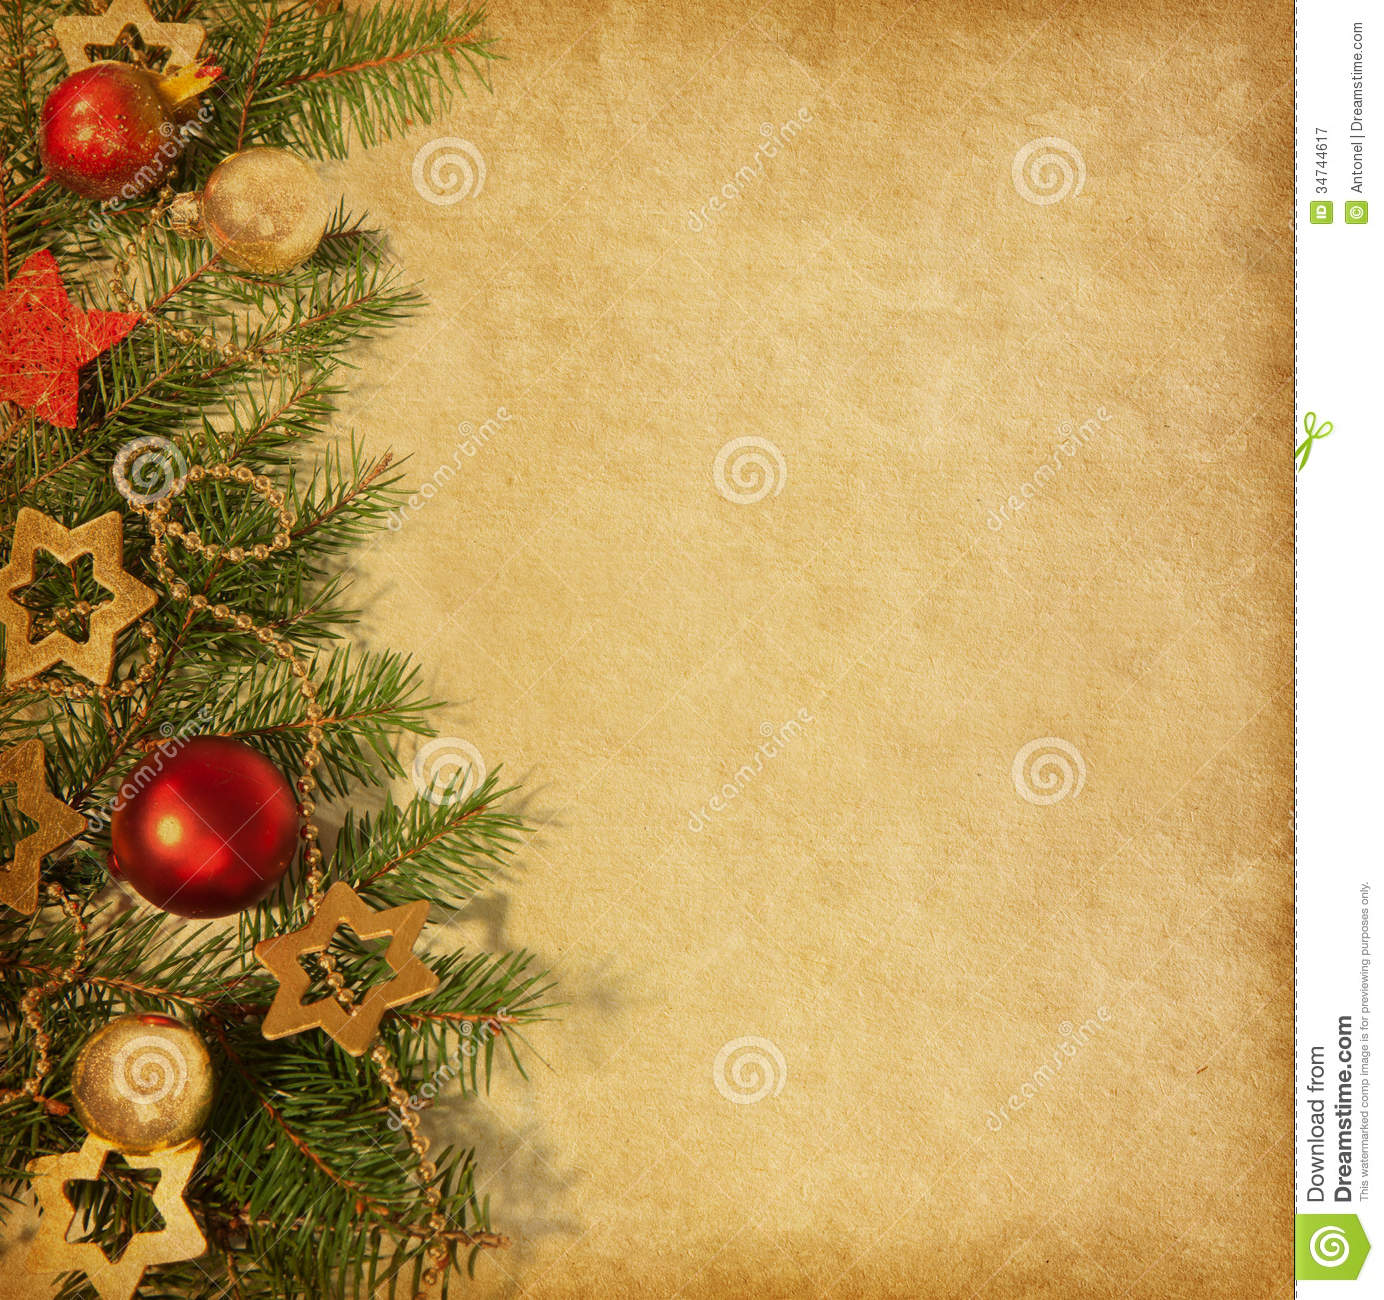 photograph regarding Free Printable Backgrounds for Paper identify Xmas border. inventory impression. Graphic of product, website page